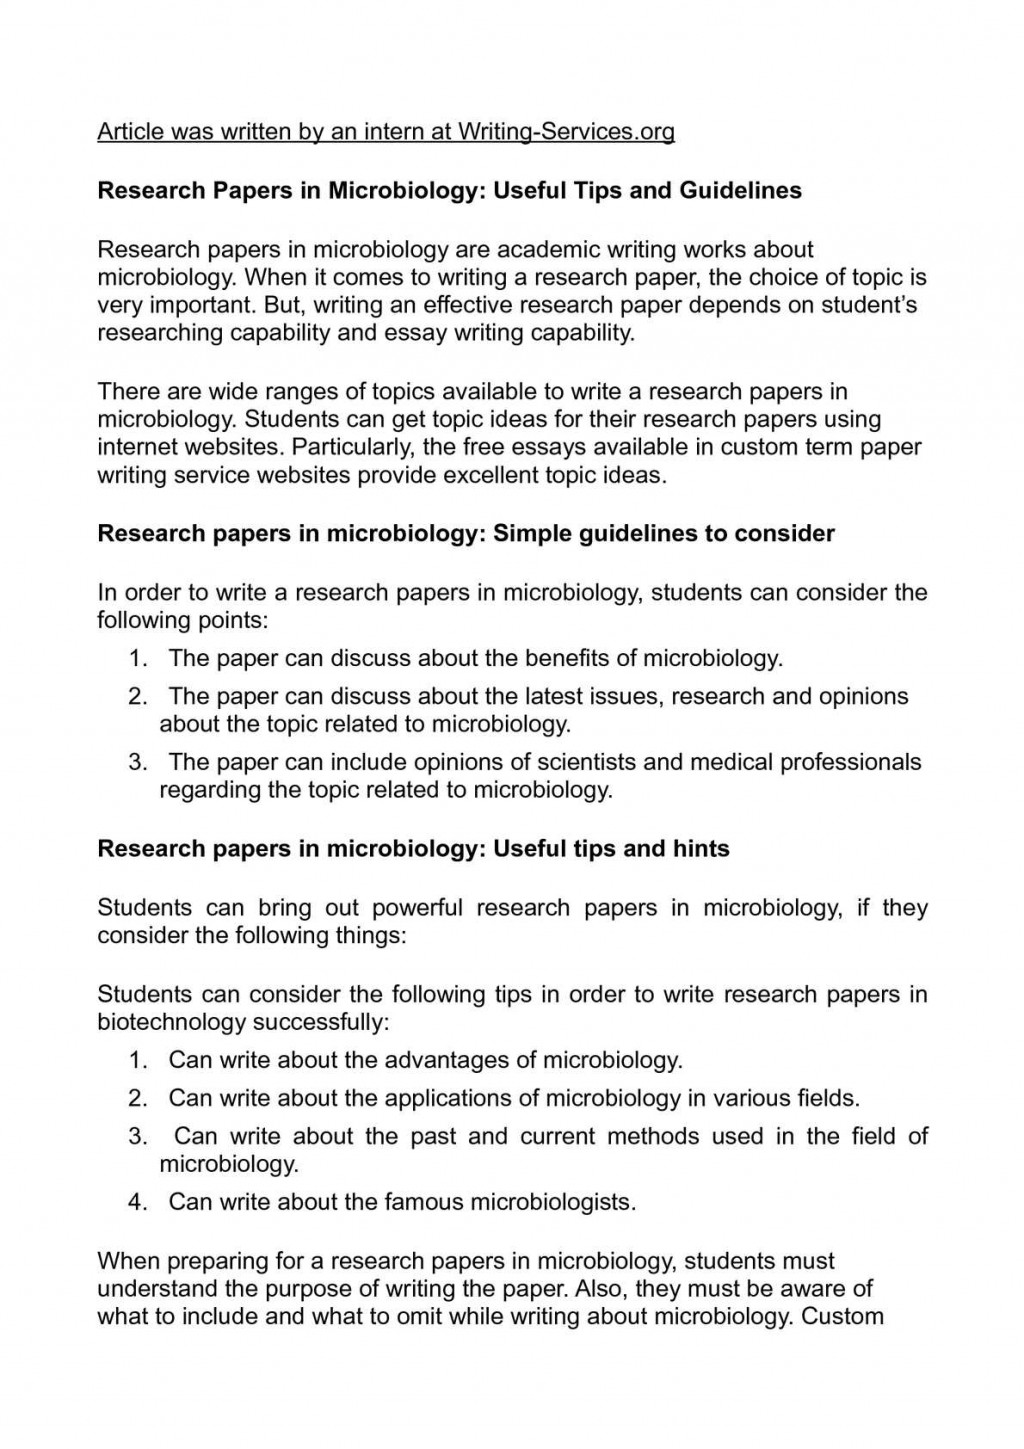 007 Research Paper Tips For Papers Wondrous Good Effective Writing Large